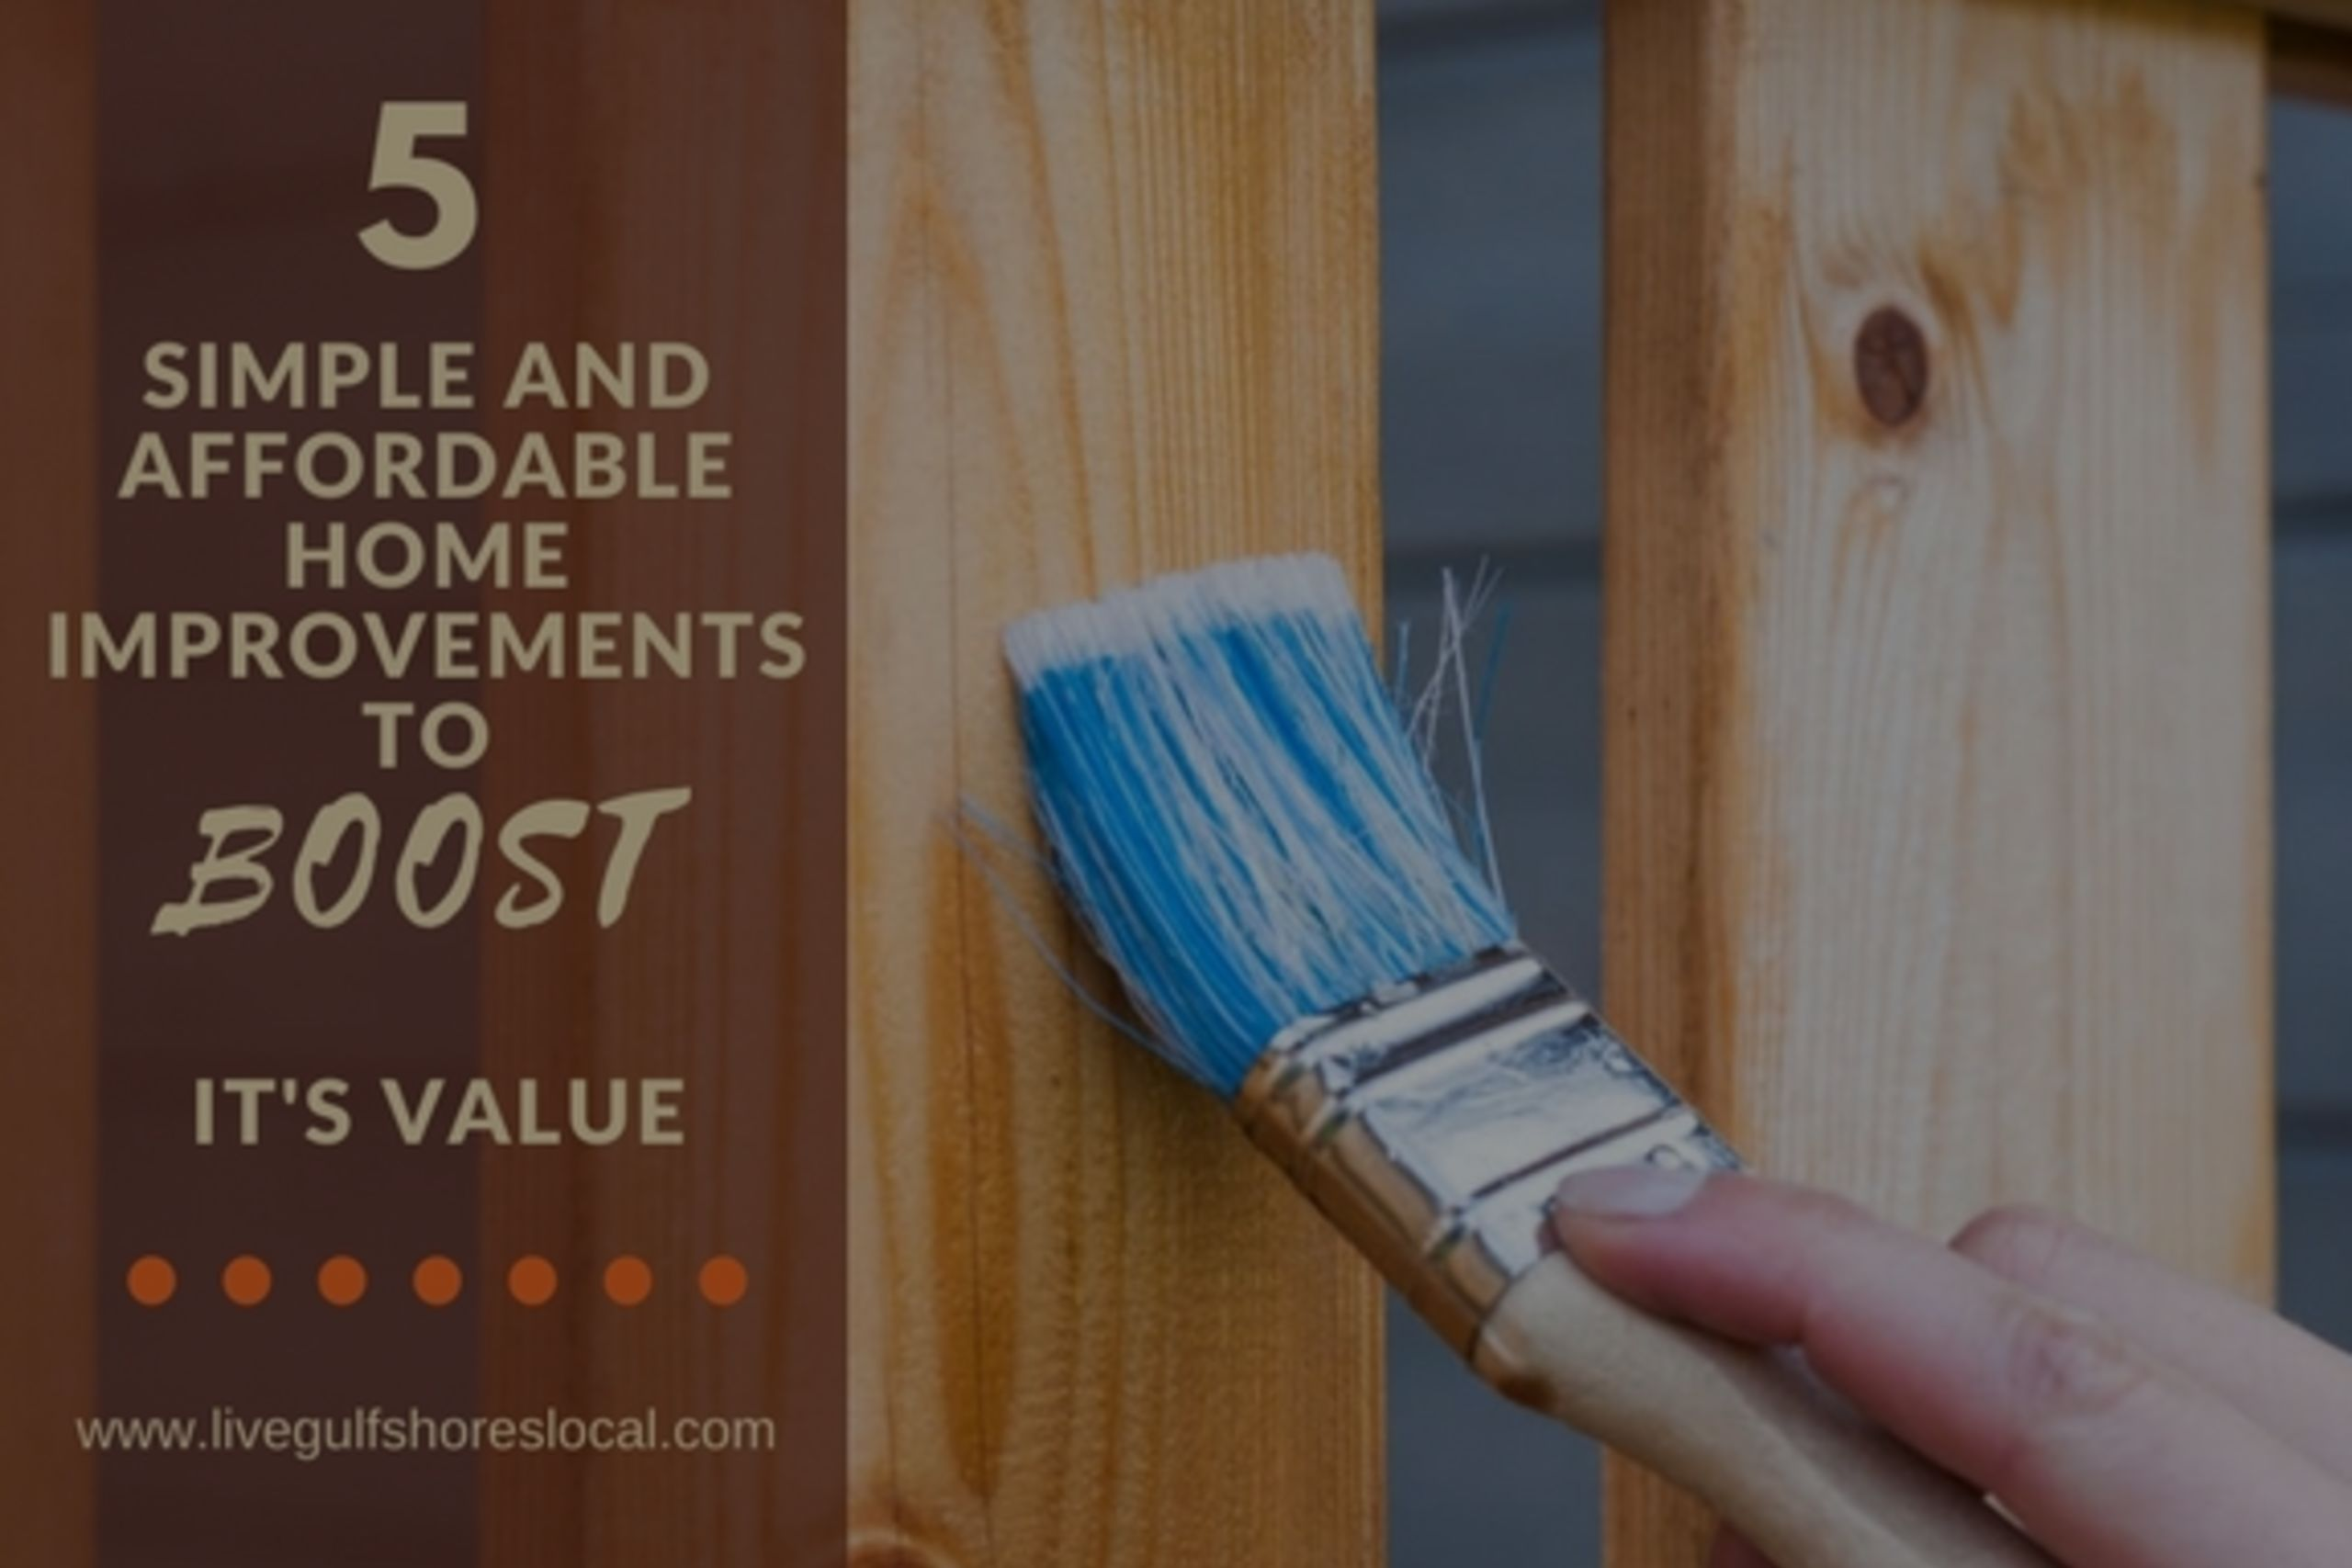 5 Simple and Affordable Home Improvements to Boost It's Value